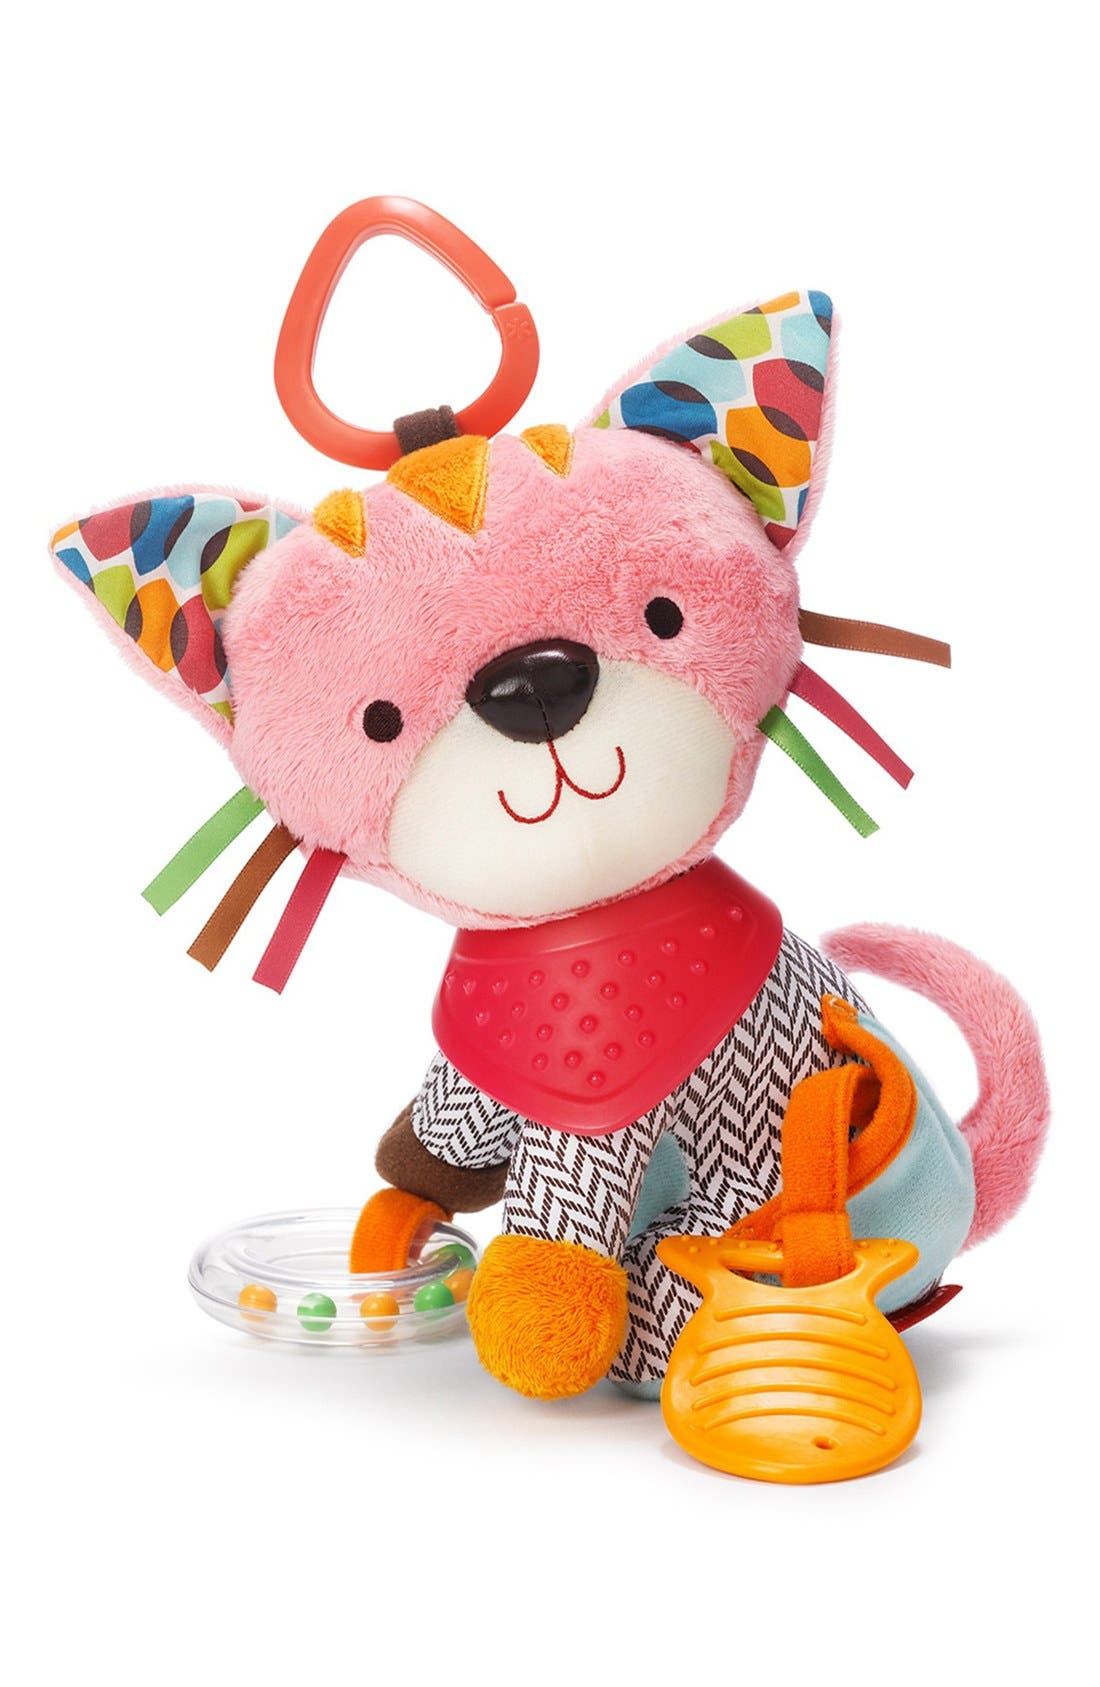 Skip Hop 'Bandana Buddies' Activity Kitten